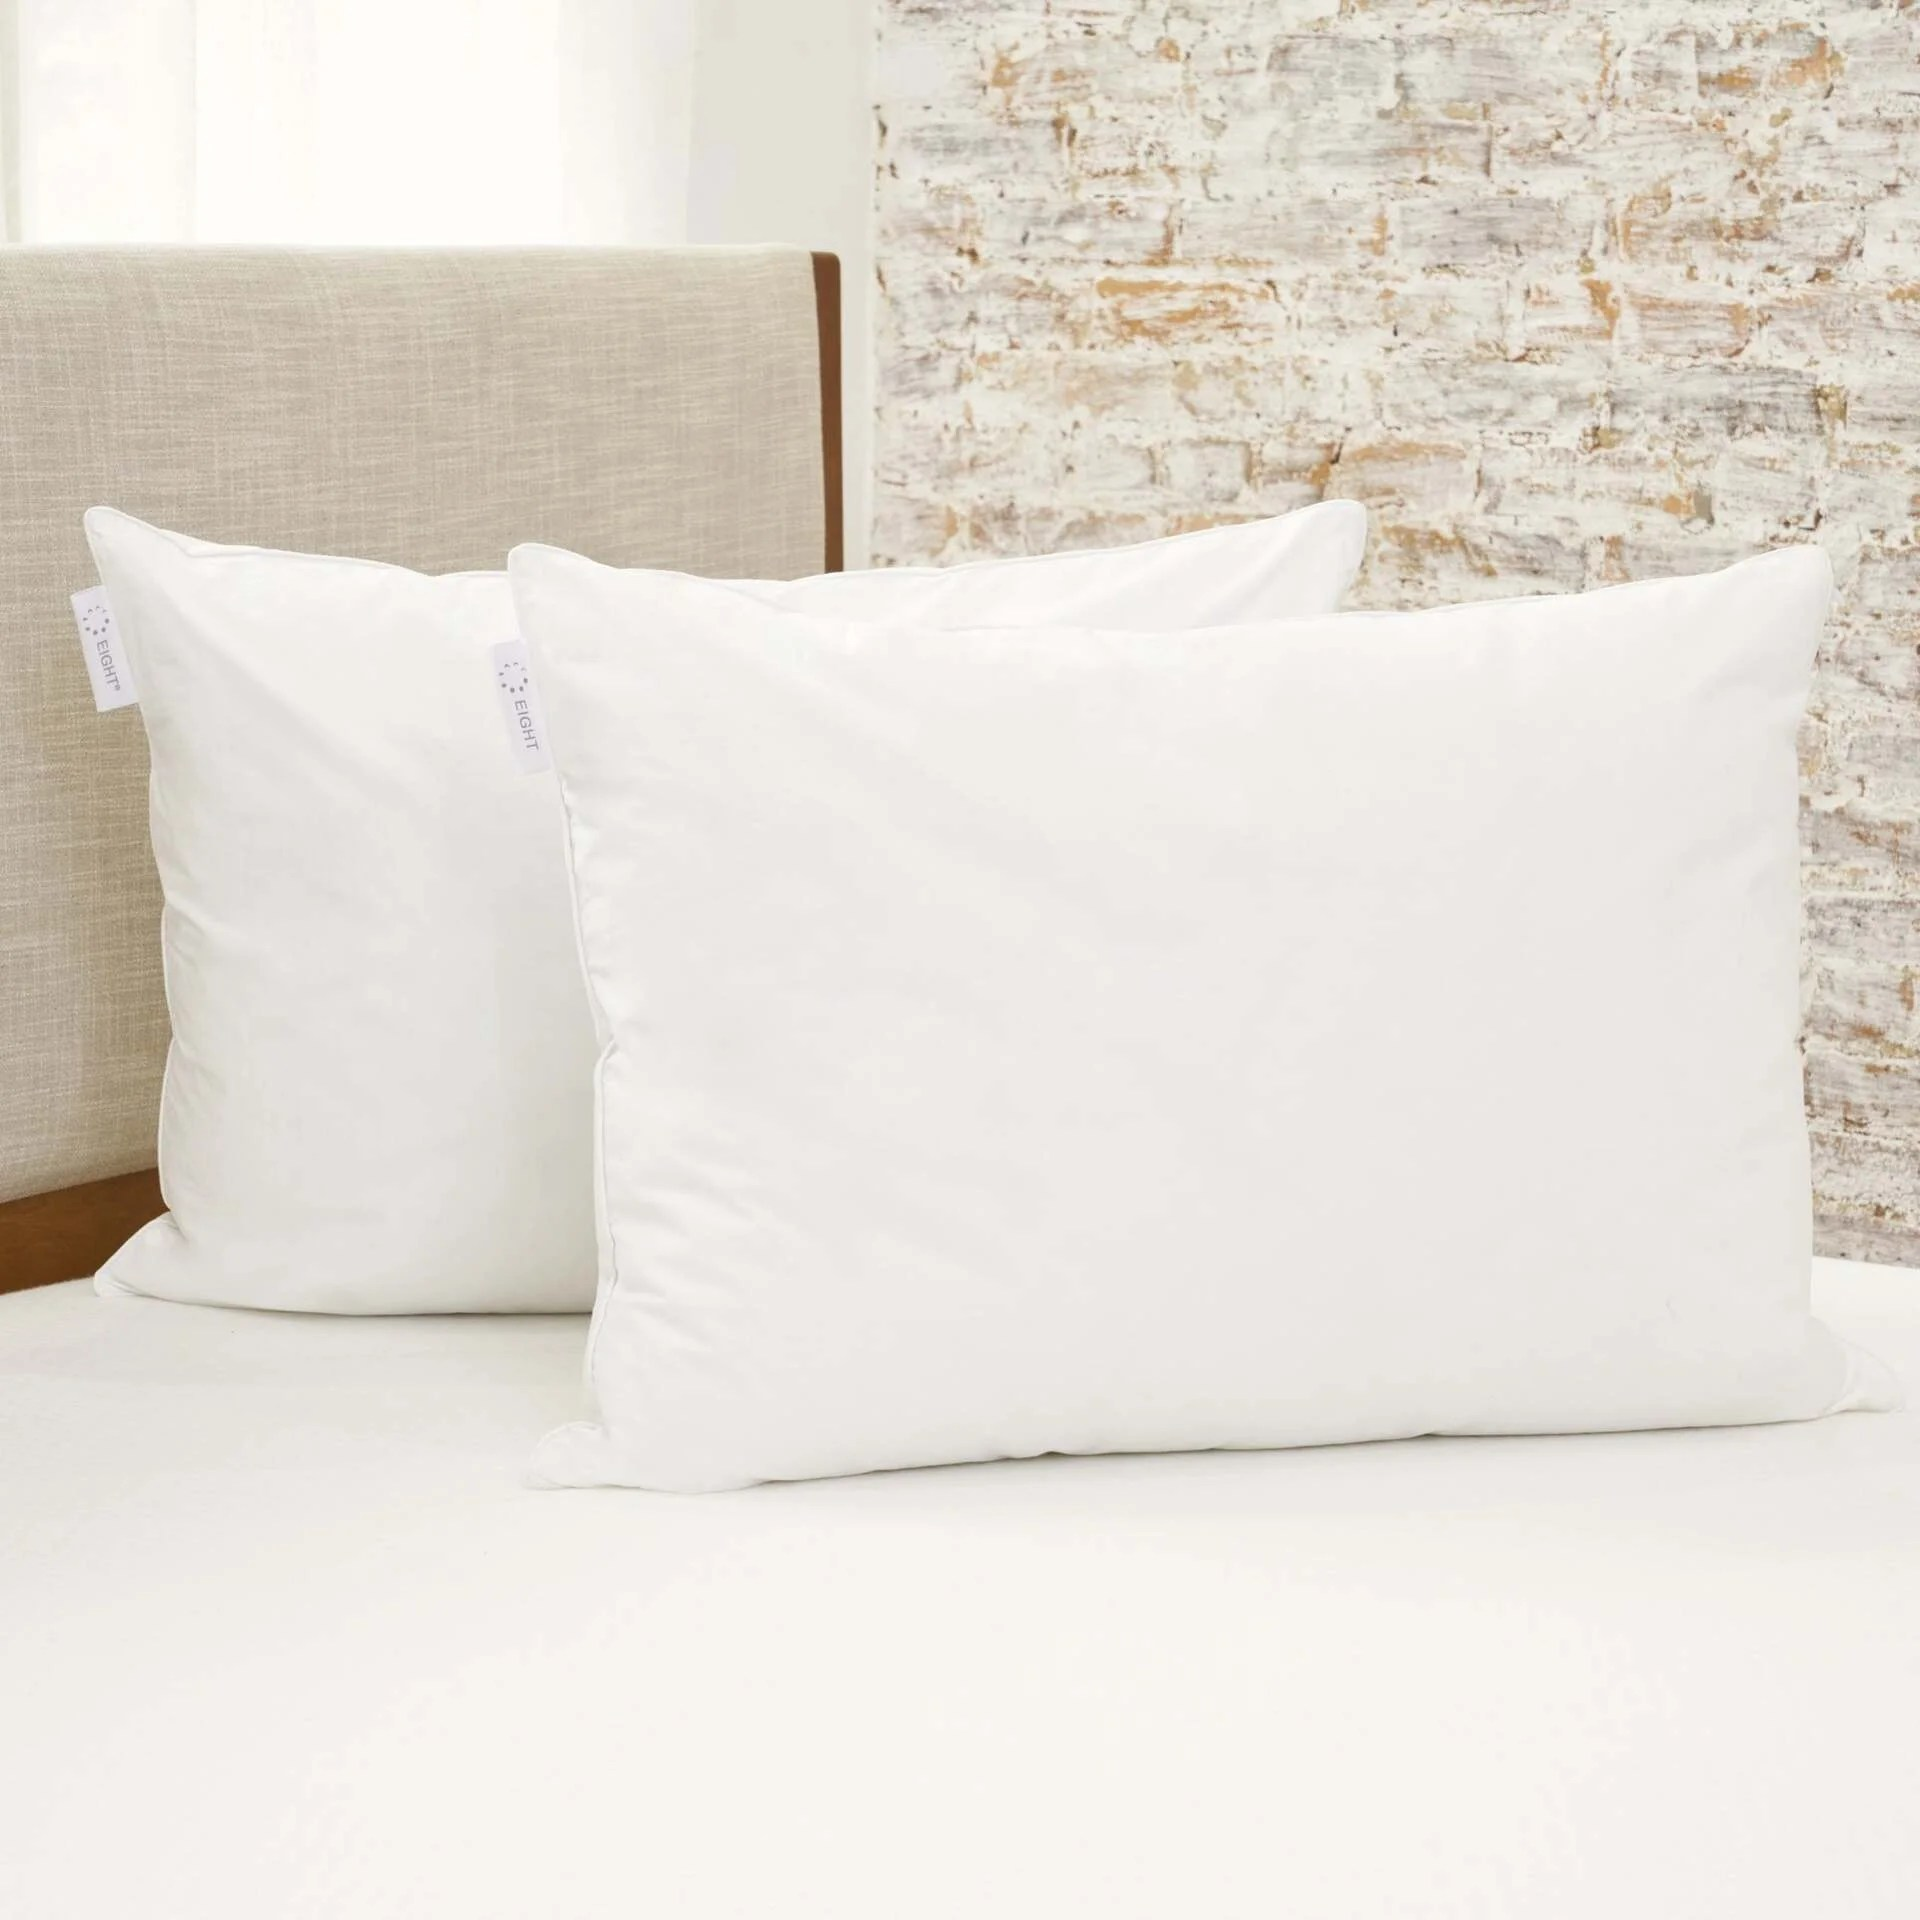 Best Firm Pillow For Side Sleepers How An Adjustable Pillow Can Help You Sleep Better Eight Sleep